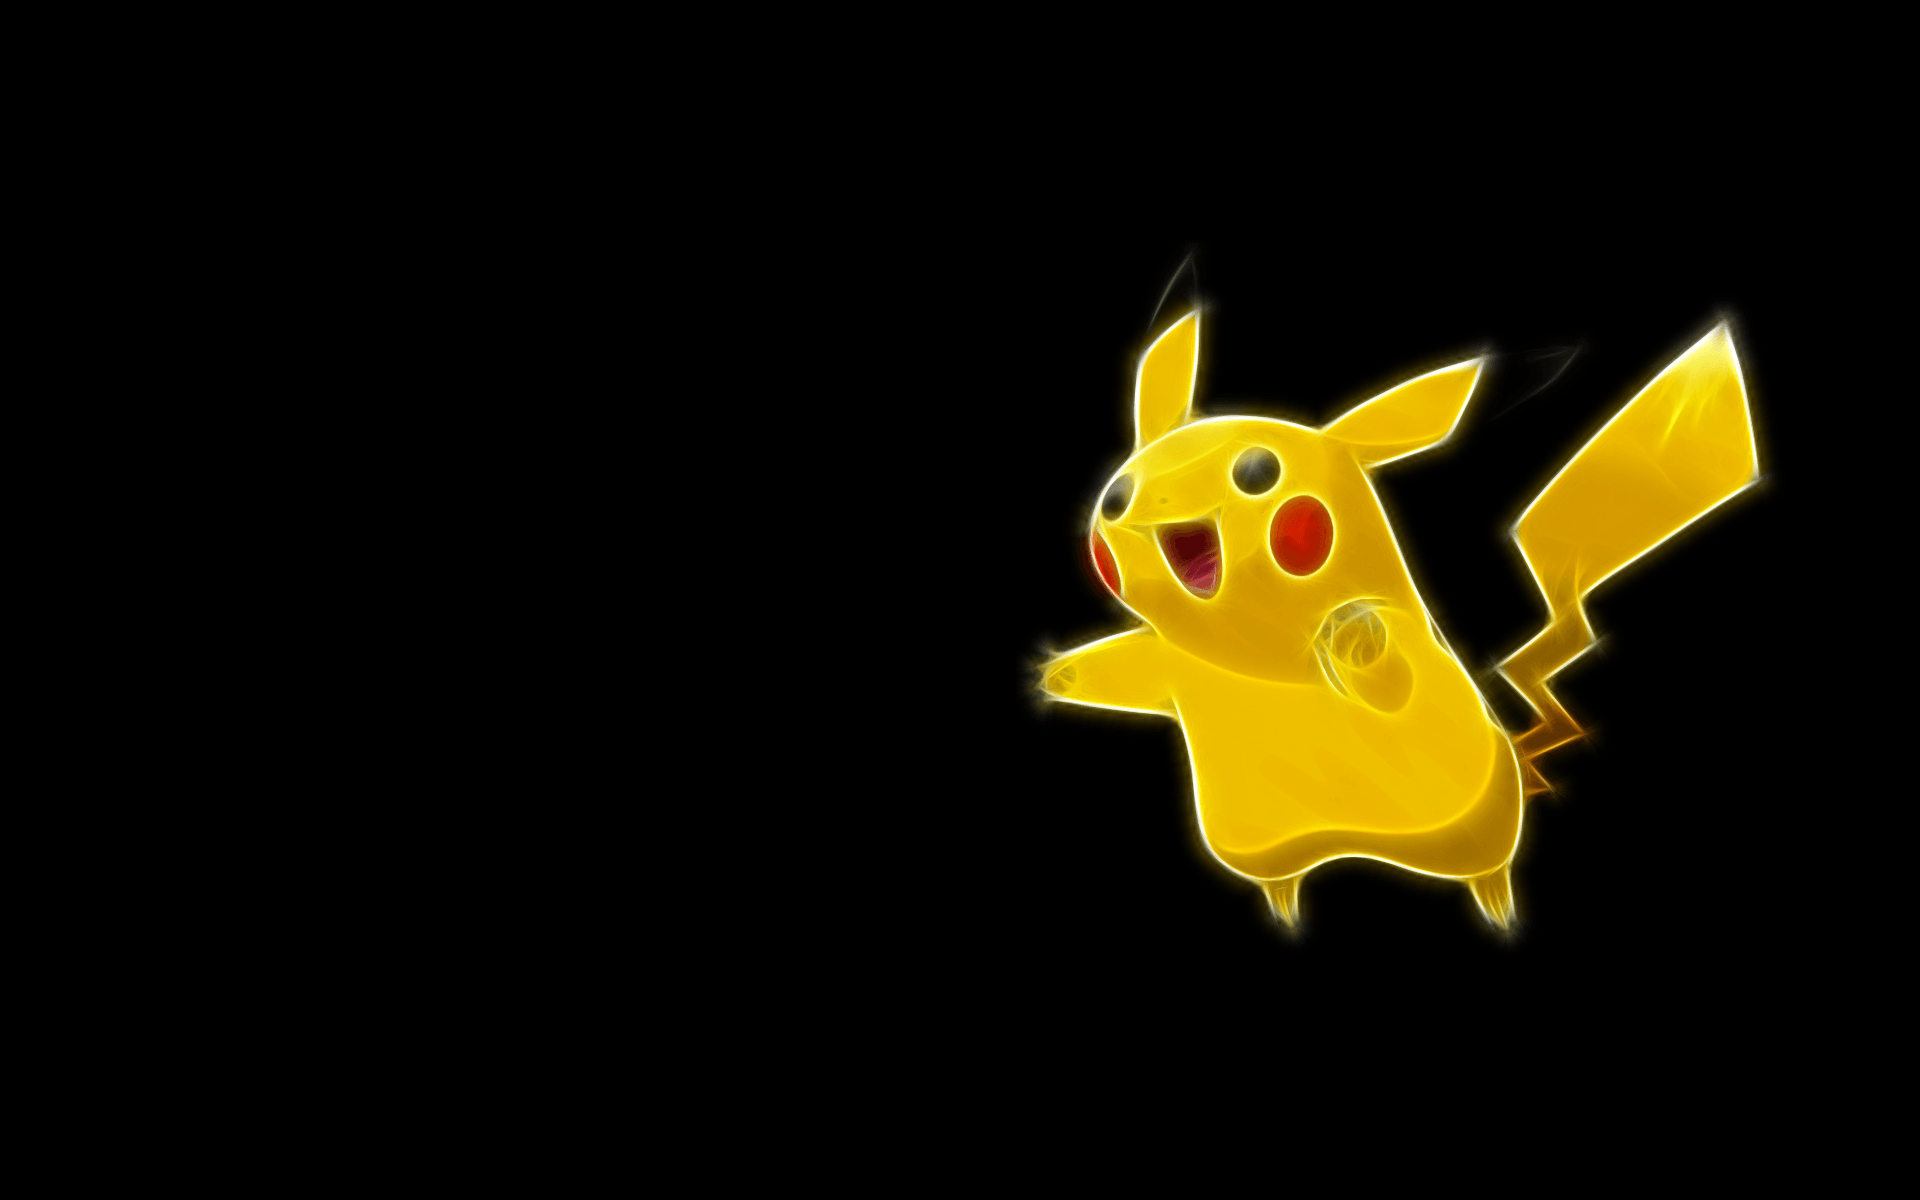 Related Pictures Pokemon Pikachu Wallpapers Pikachu Wallpapers ...